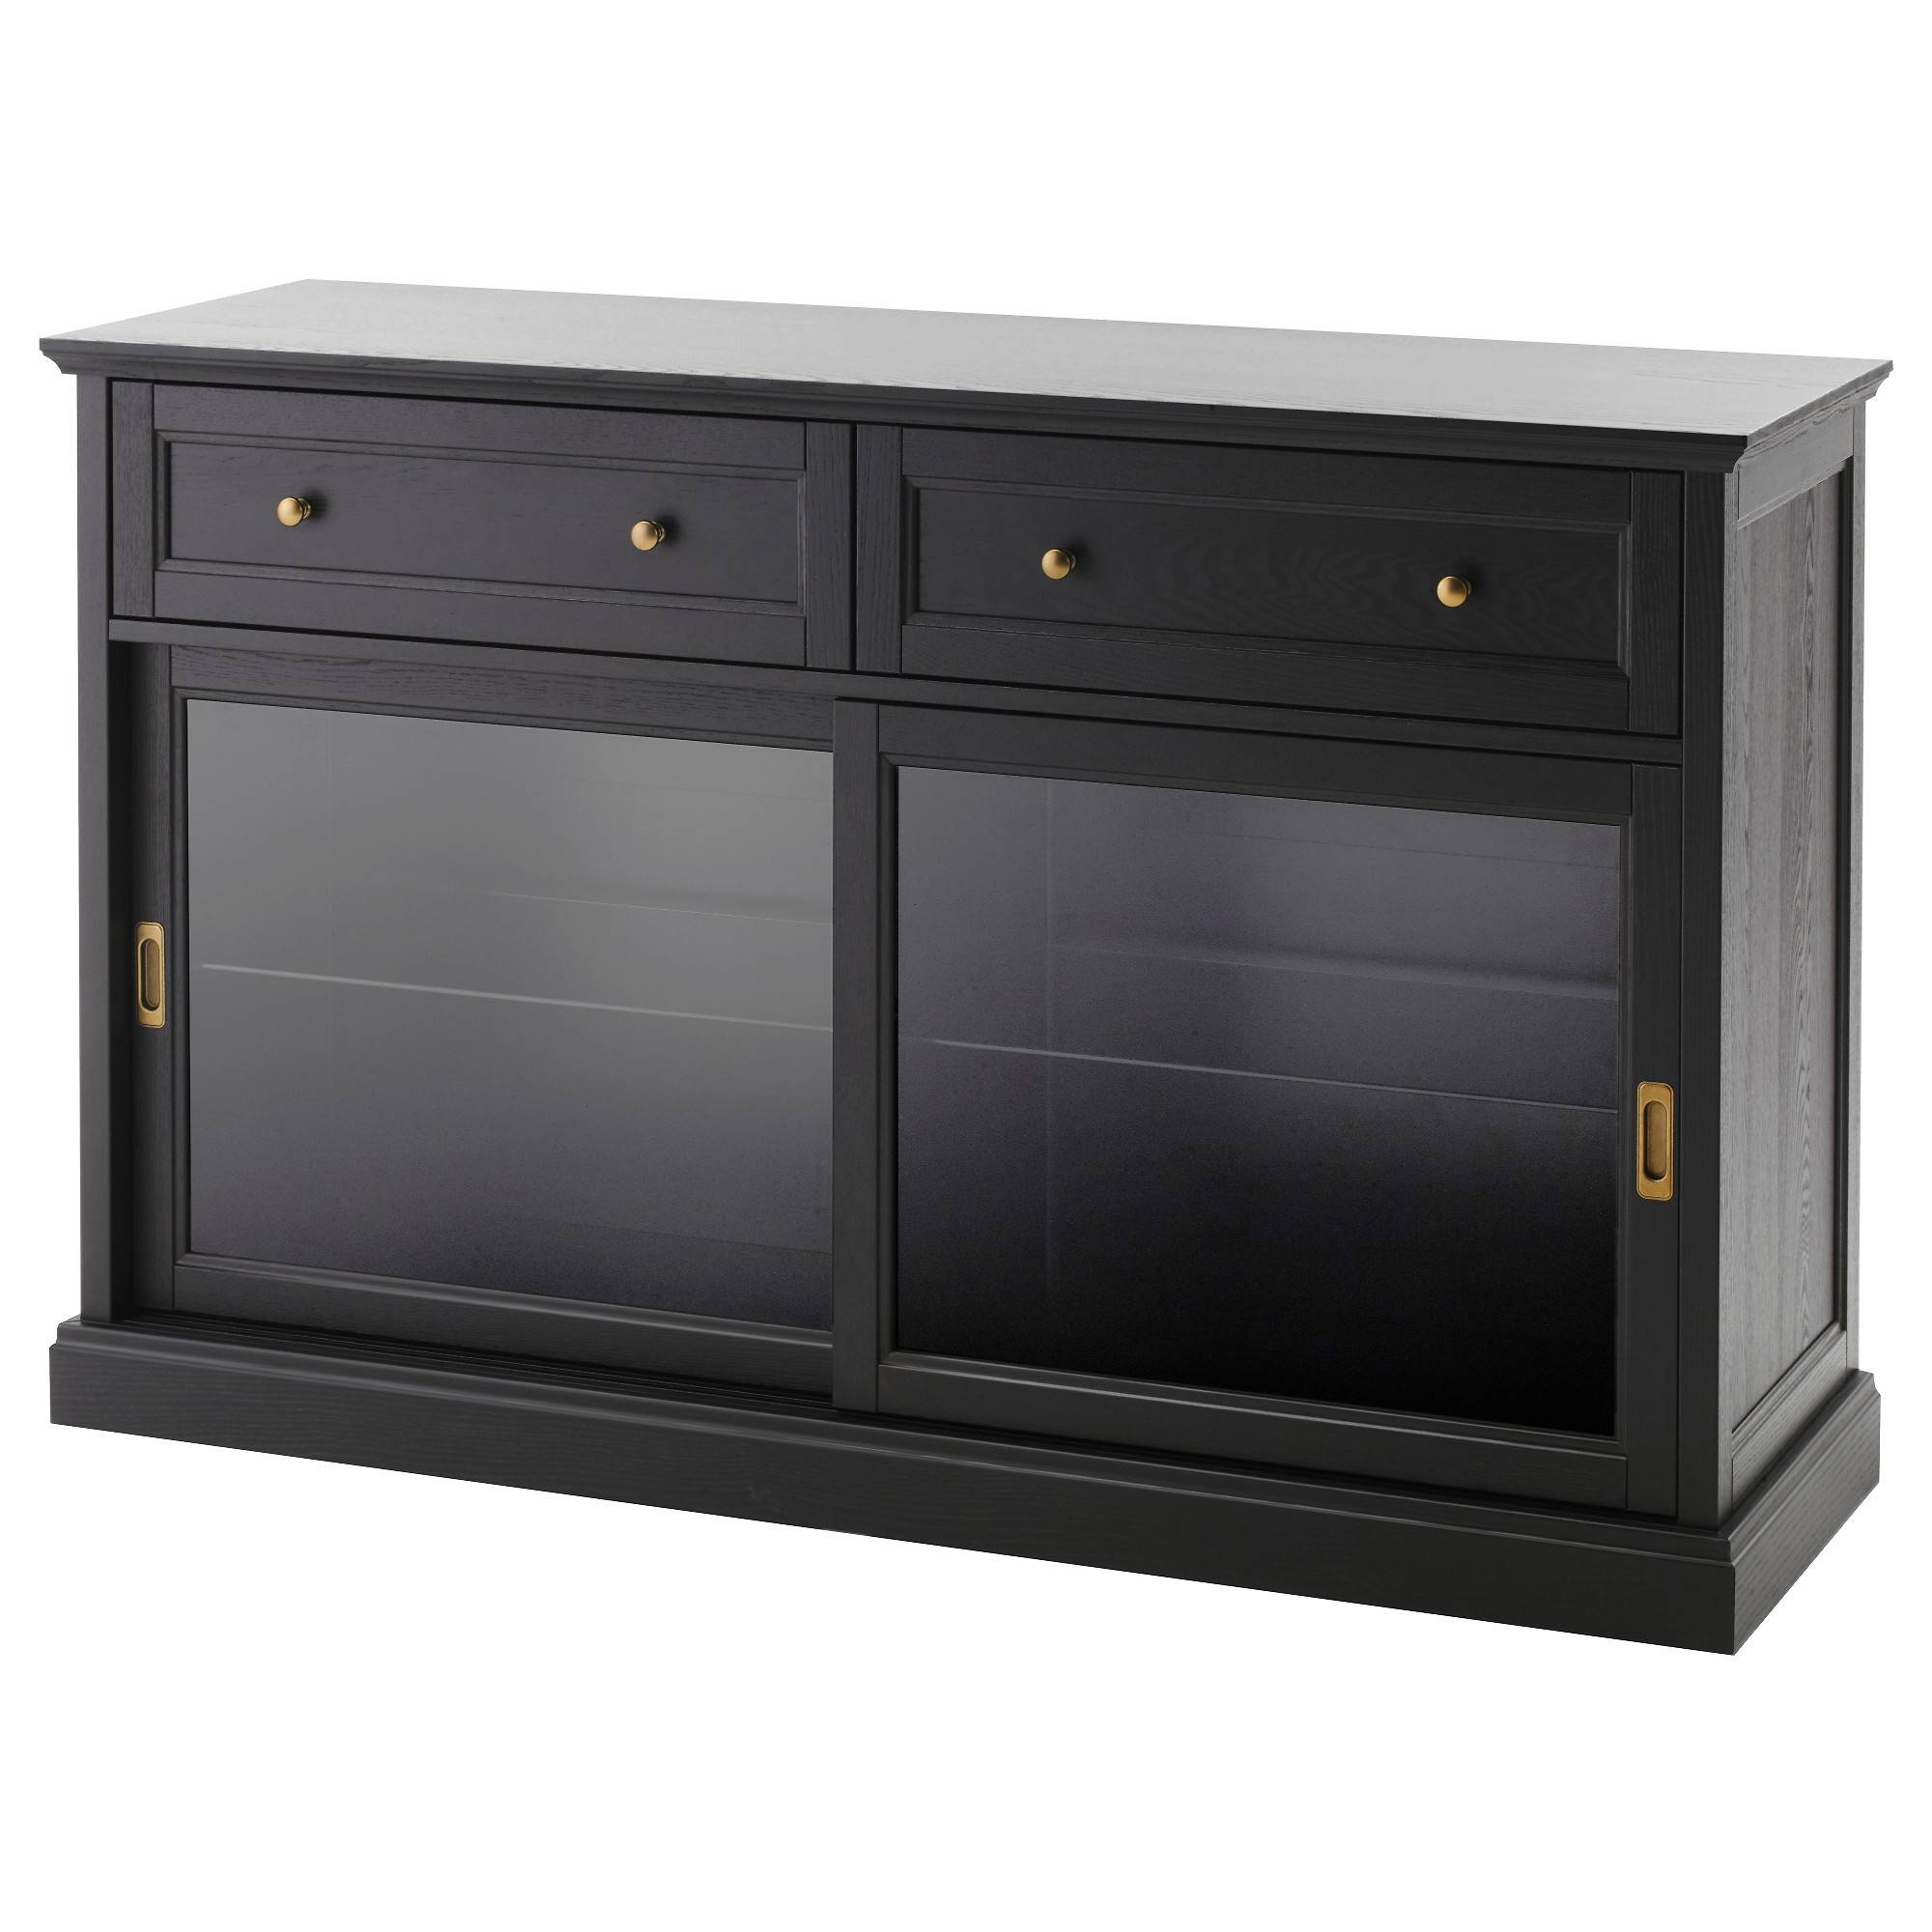 Unique Black Sideboard Buffet - Bjdgjy with Unique Sideboards and Buffets (Image 15 of 15)